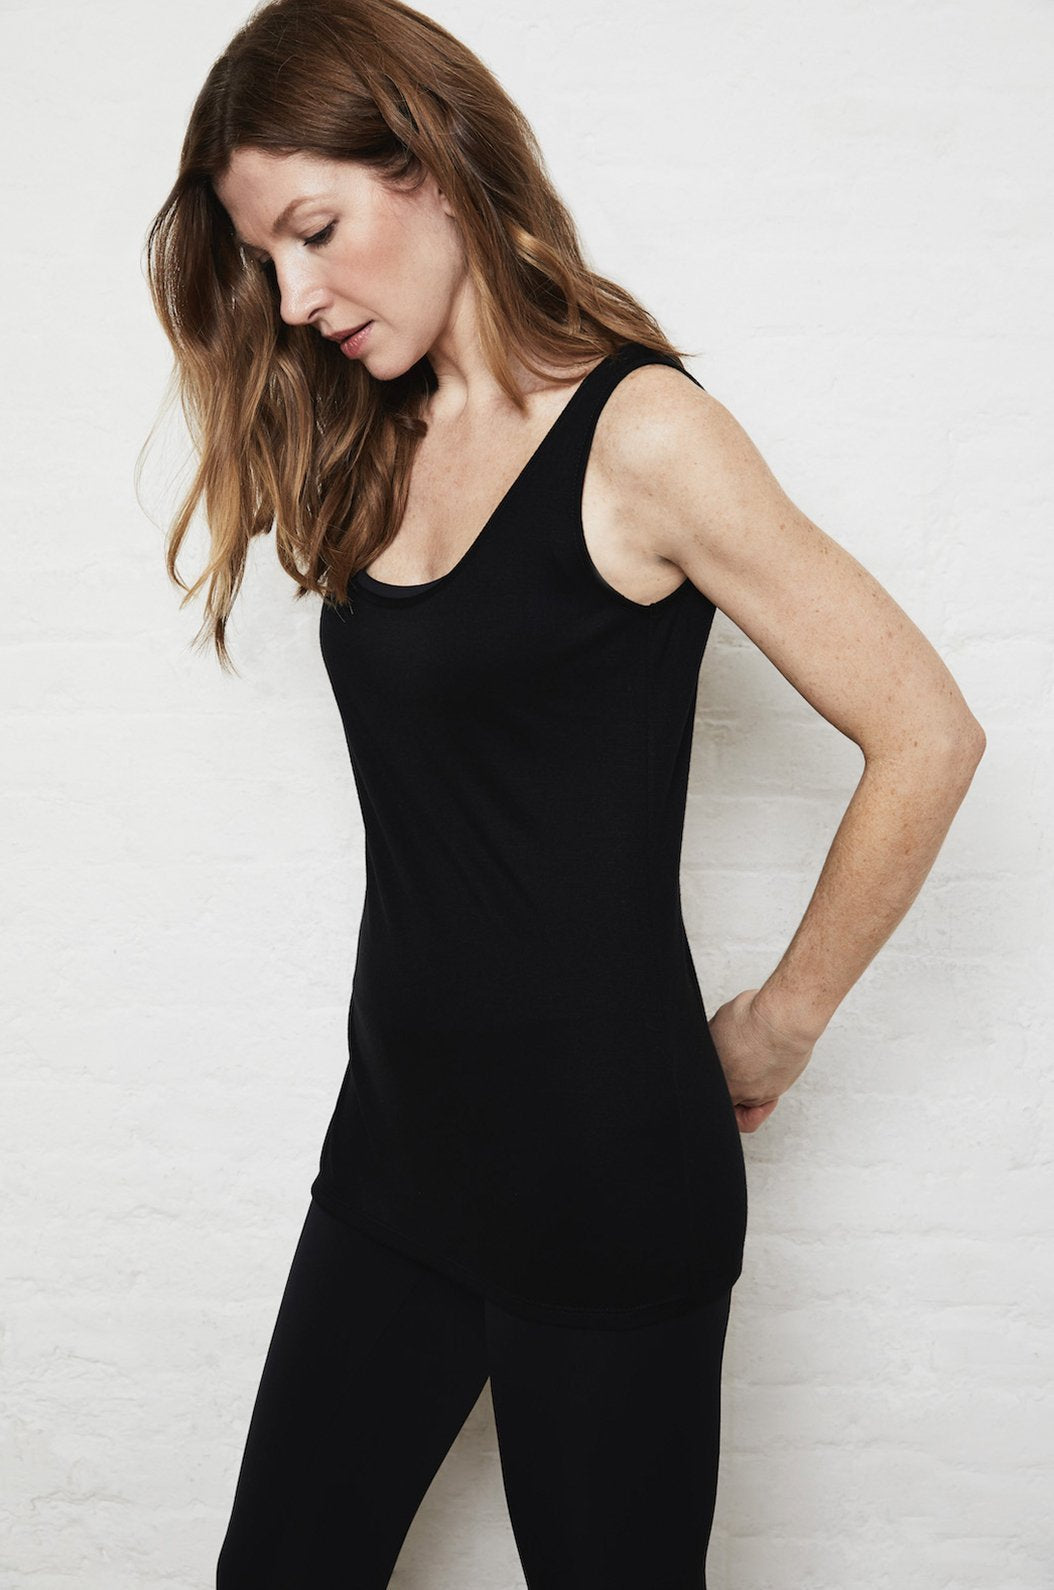 Luxury loungewear - LIGHTWEIGHT CASHMERE BLEND ELONGATED CAMISOLE TANK | ROYL